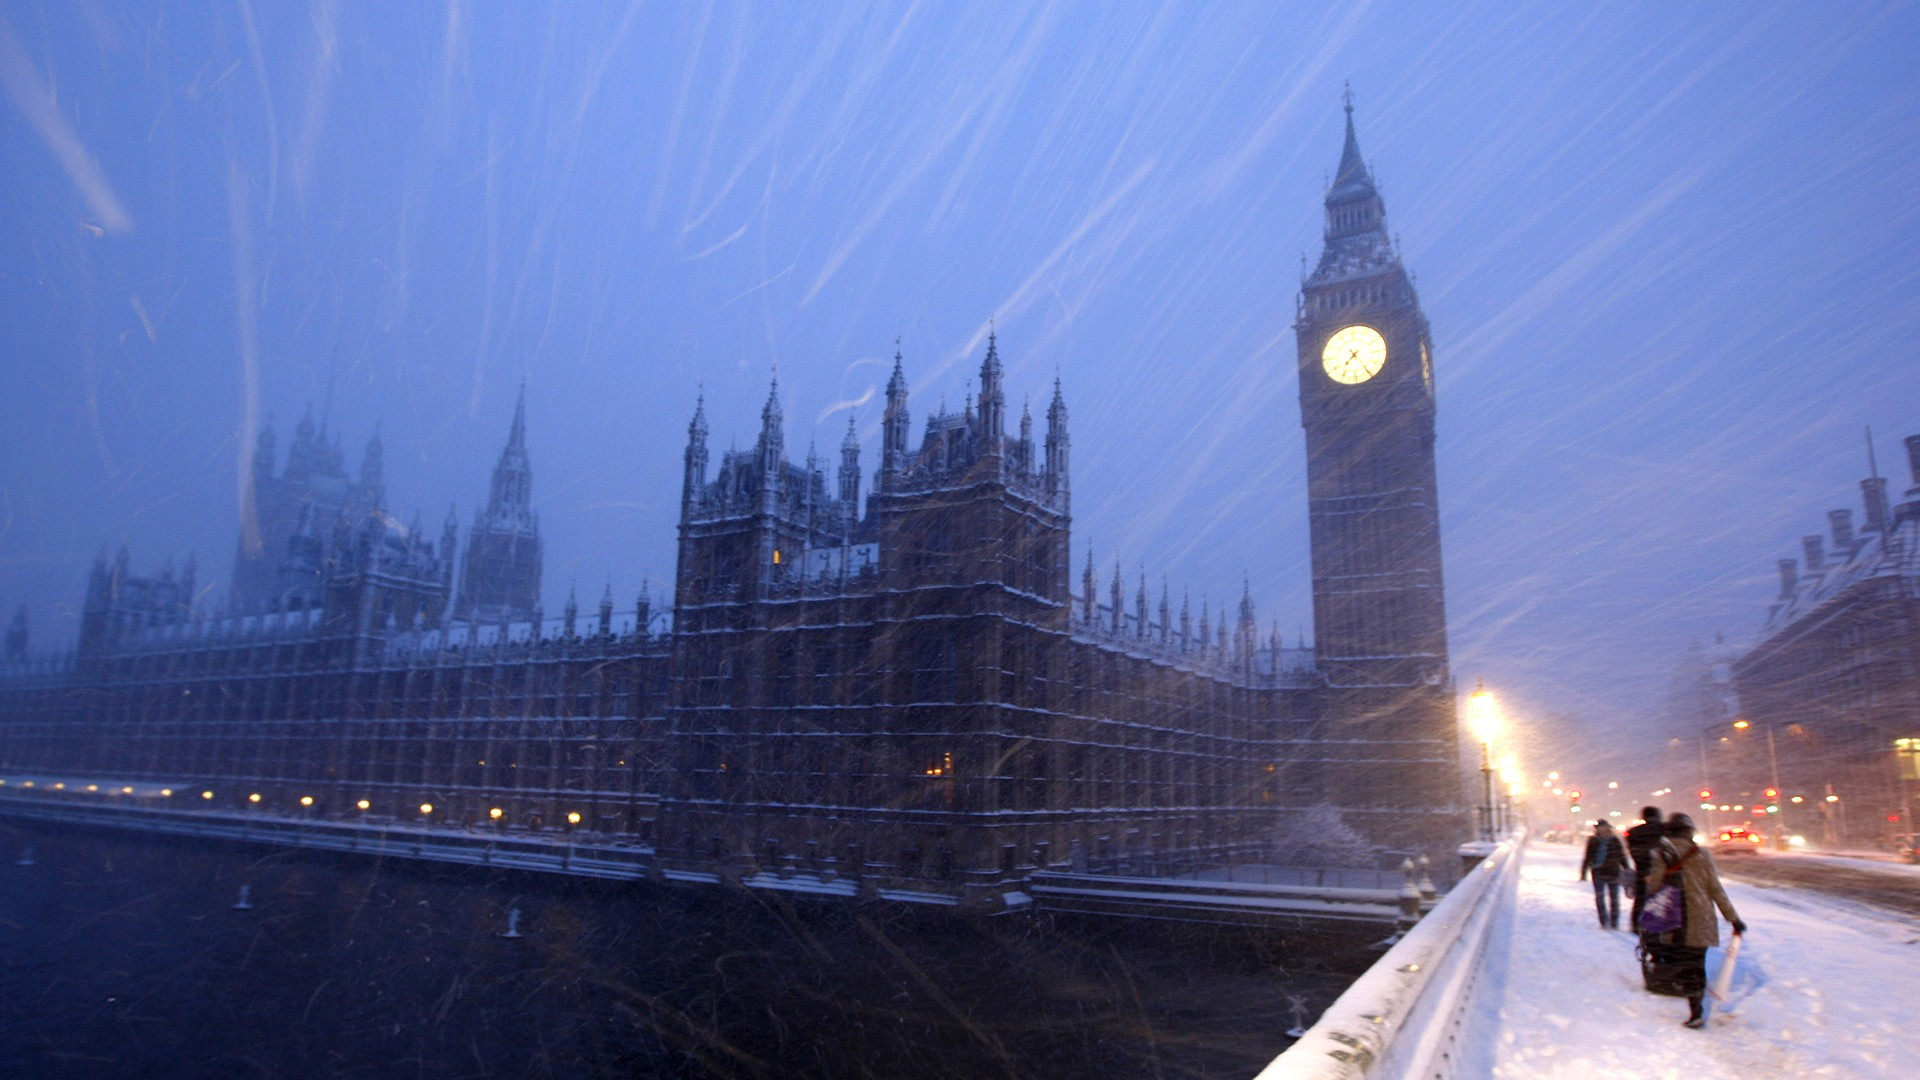 Wallpapers winter snow England London clocks Big Ben United 1920x1080